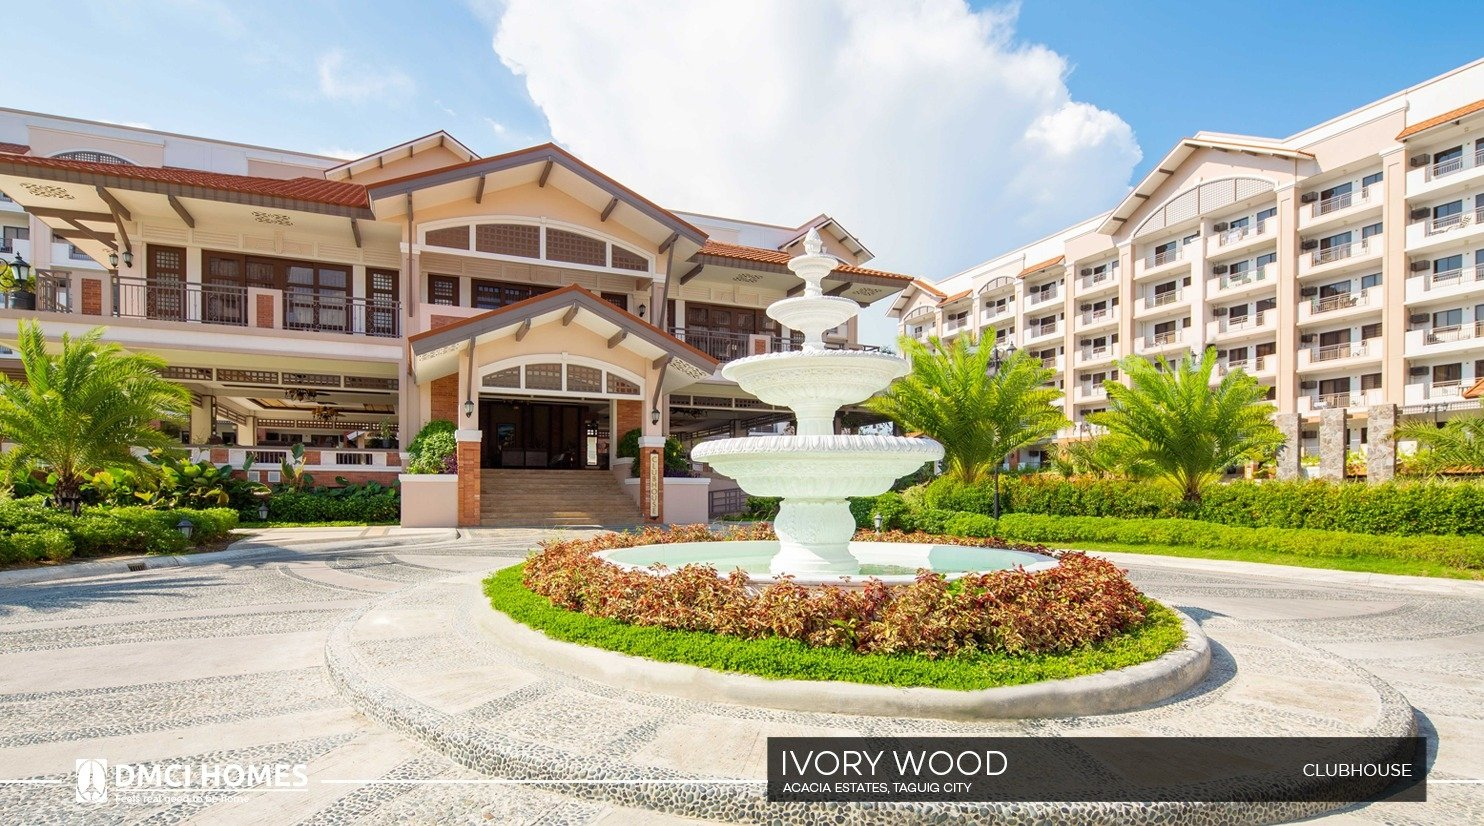 Ivory Wood-Clubhouse-large